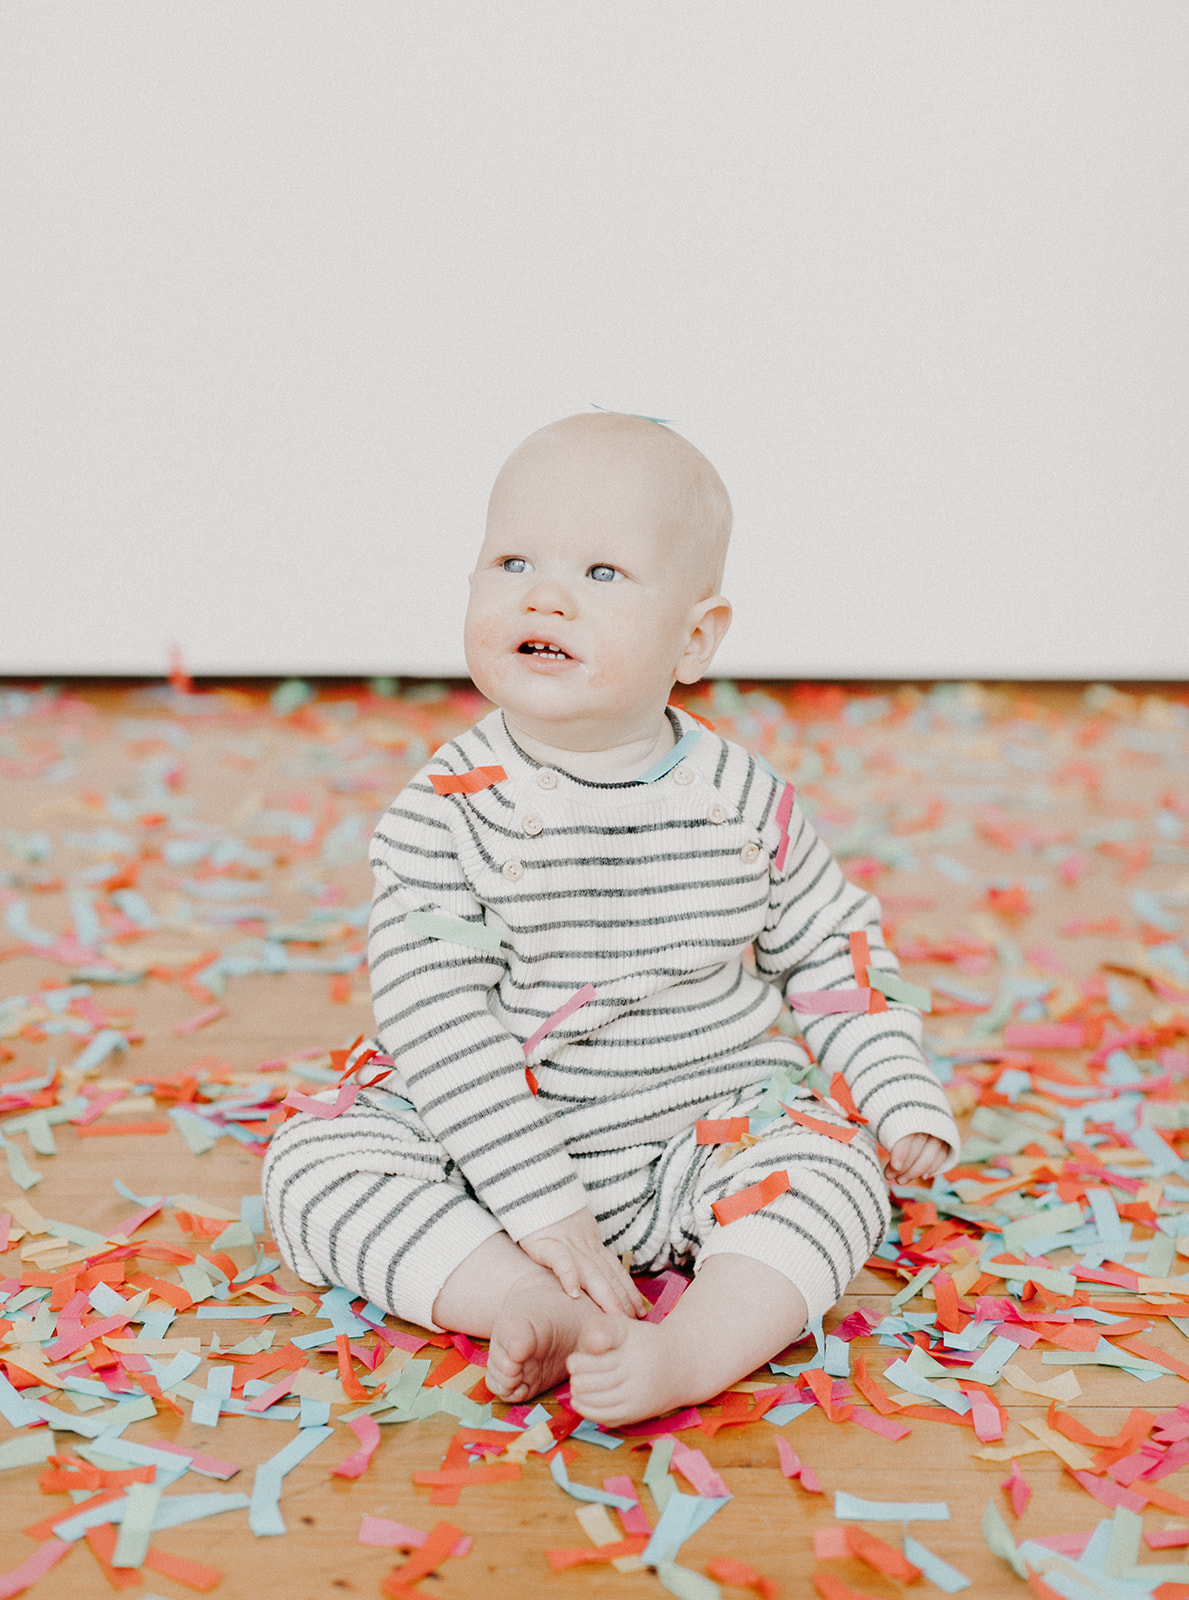 baby sitting in a pile of confetti